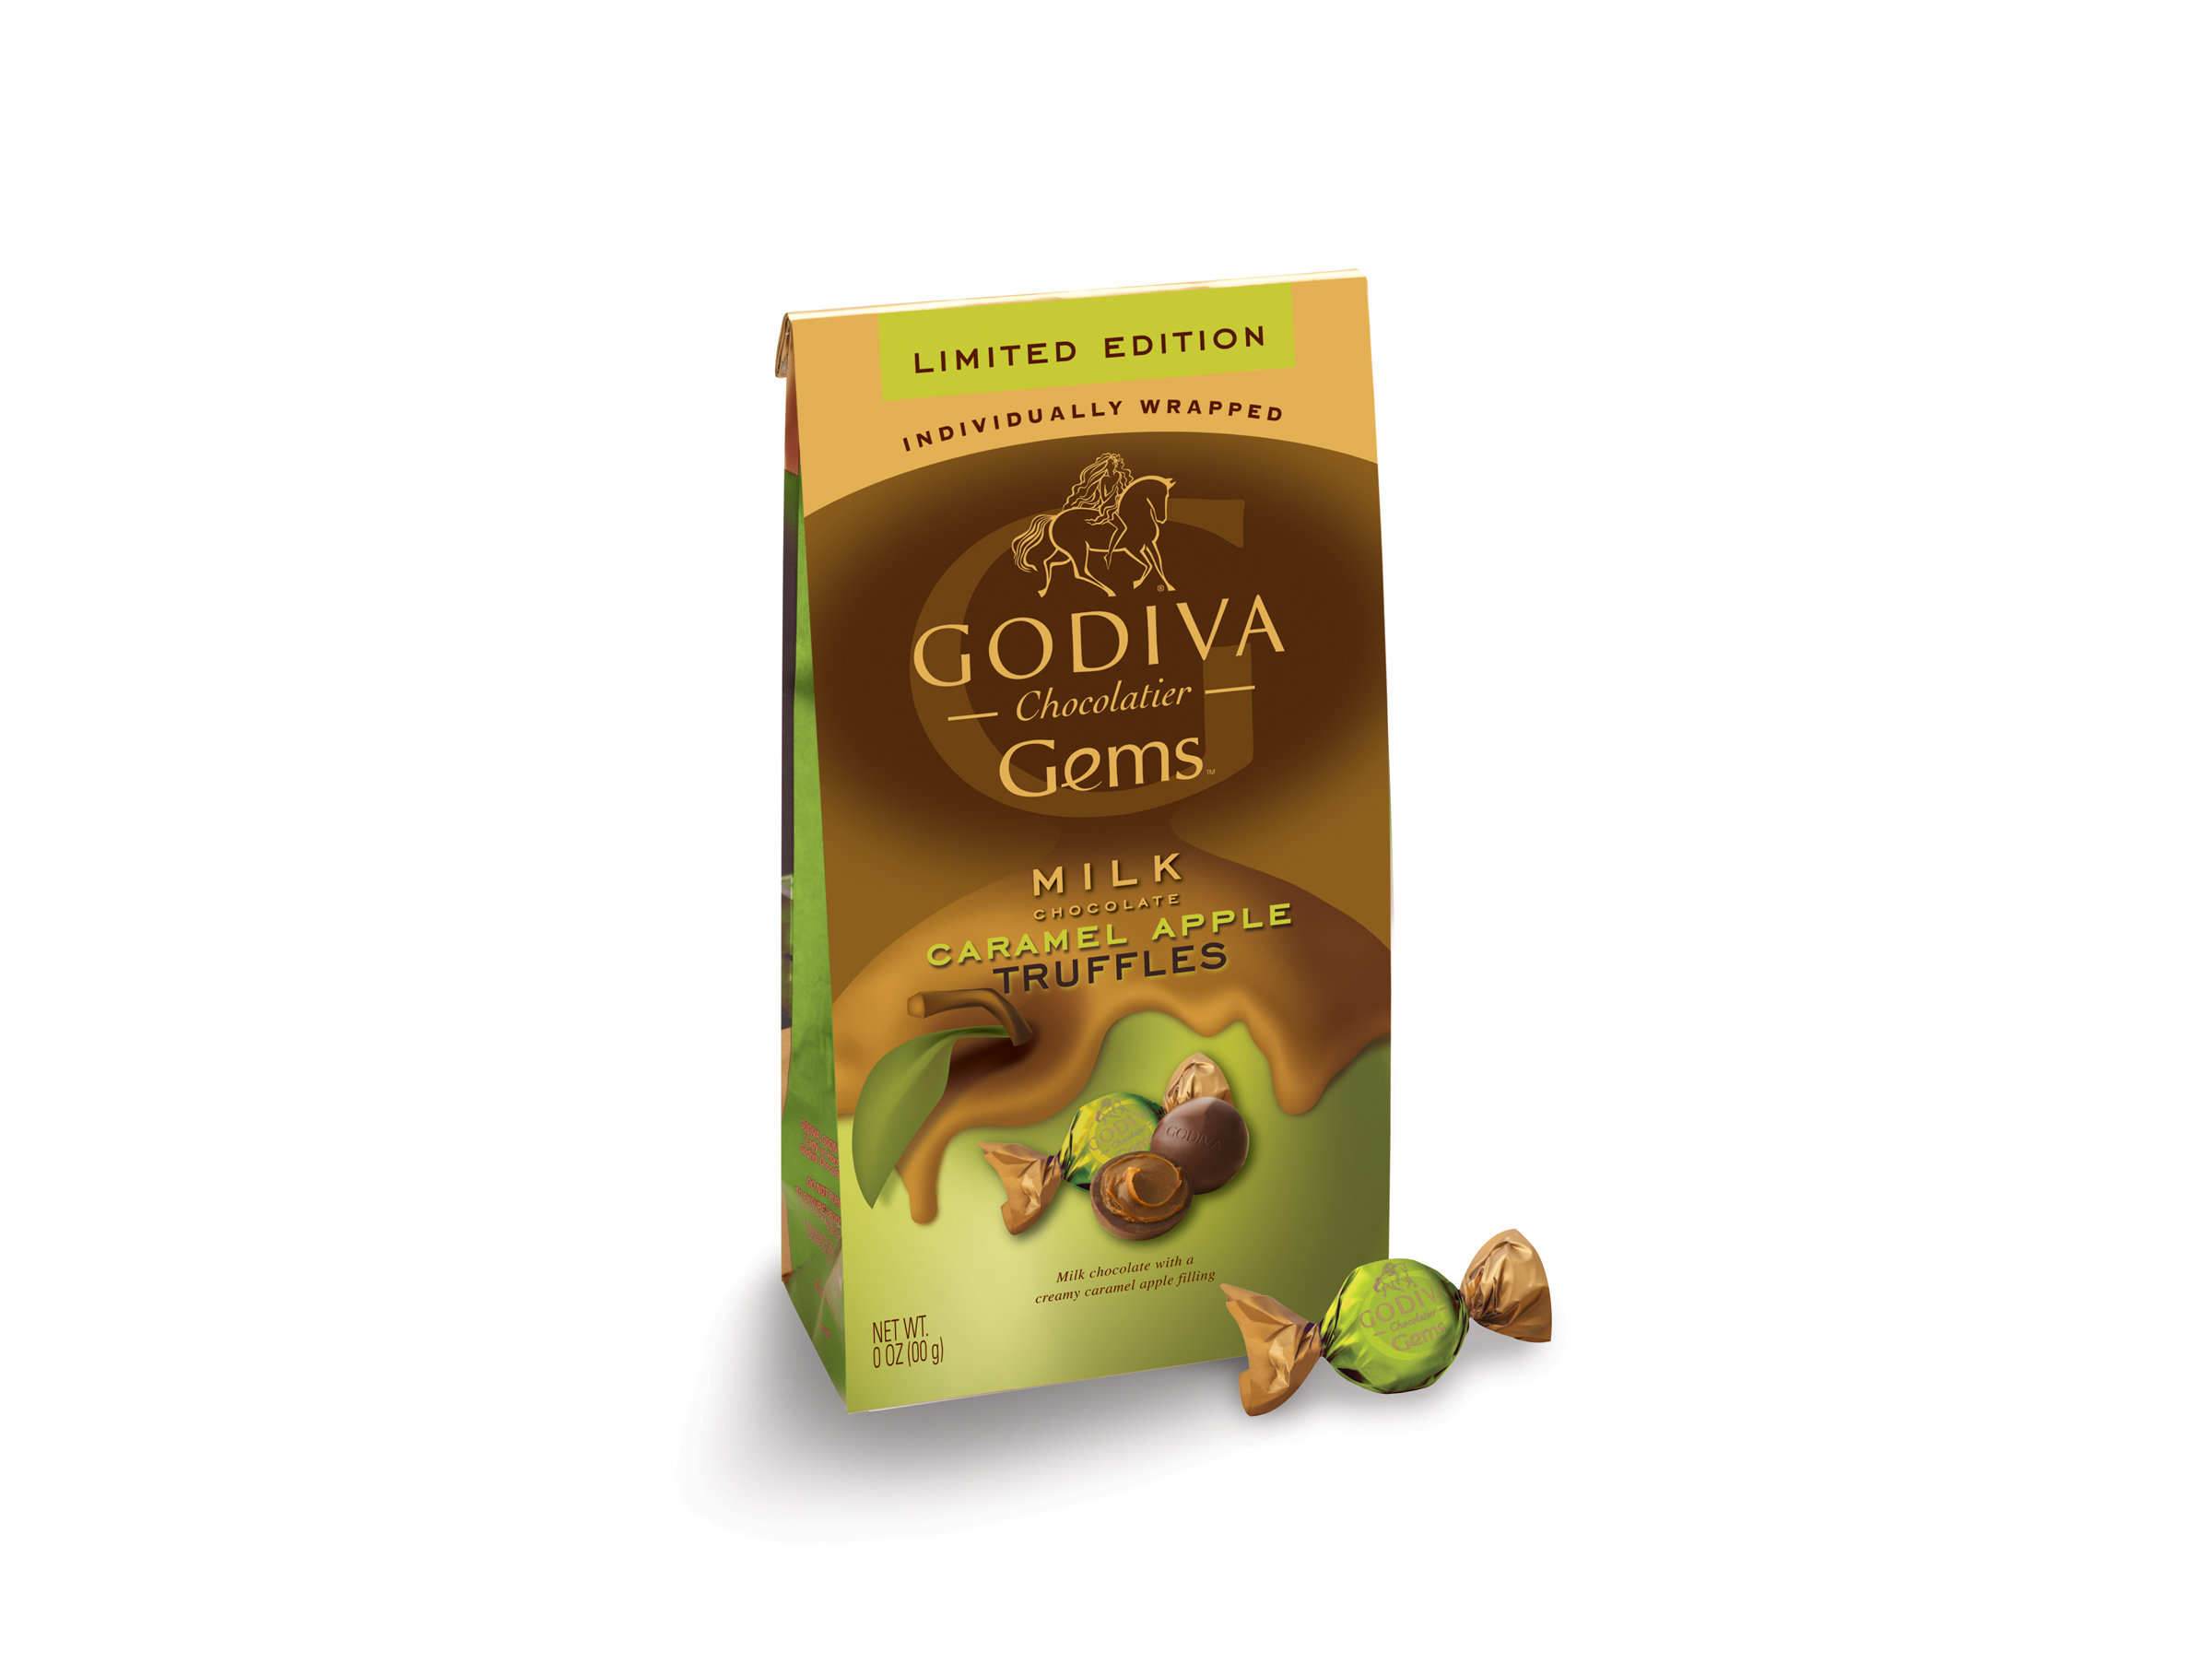 Godiva Gems Package Design - Caramel Apple